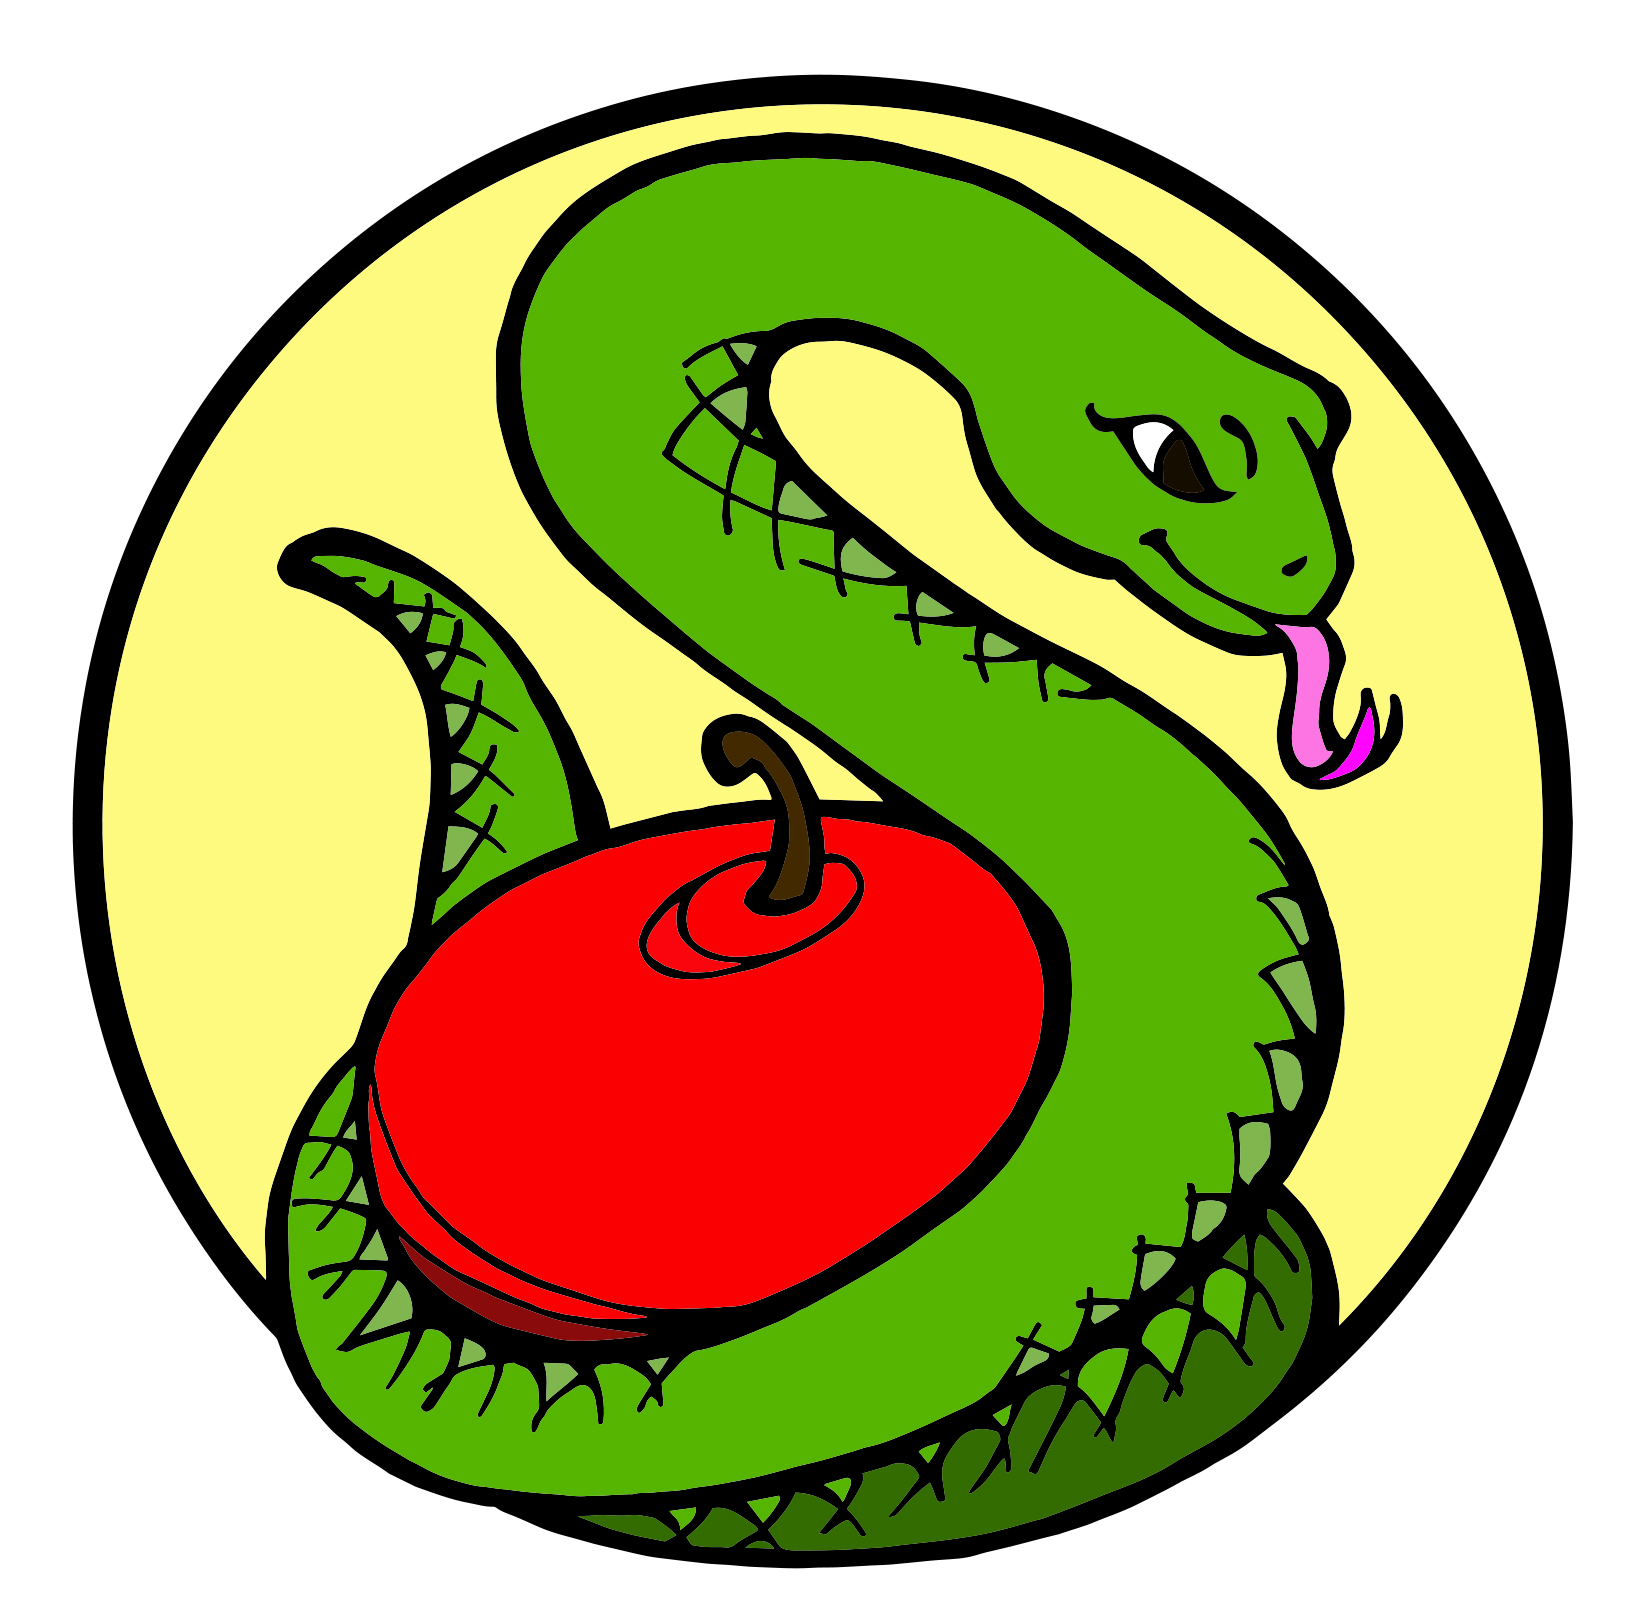 Snake with apple Jesse Tree symbol